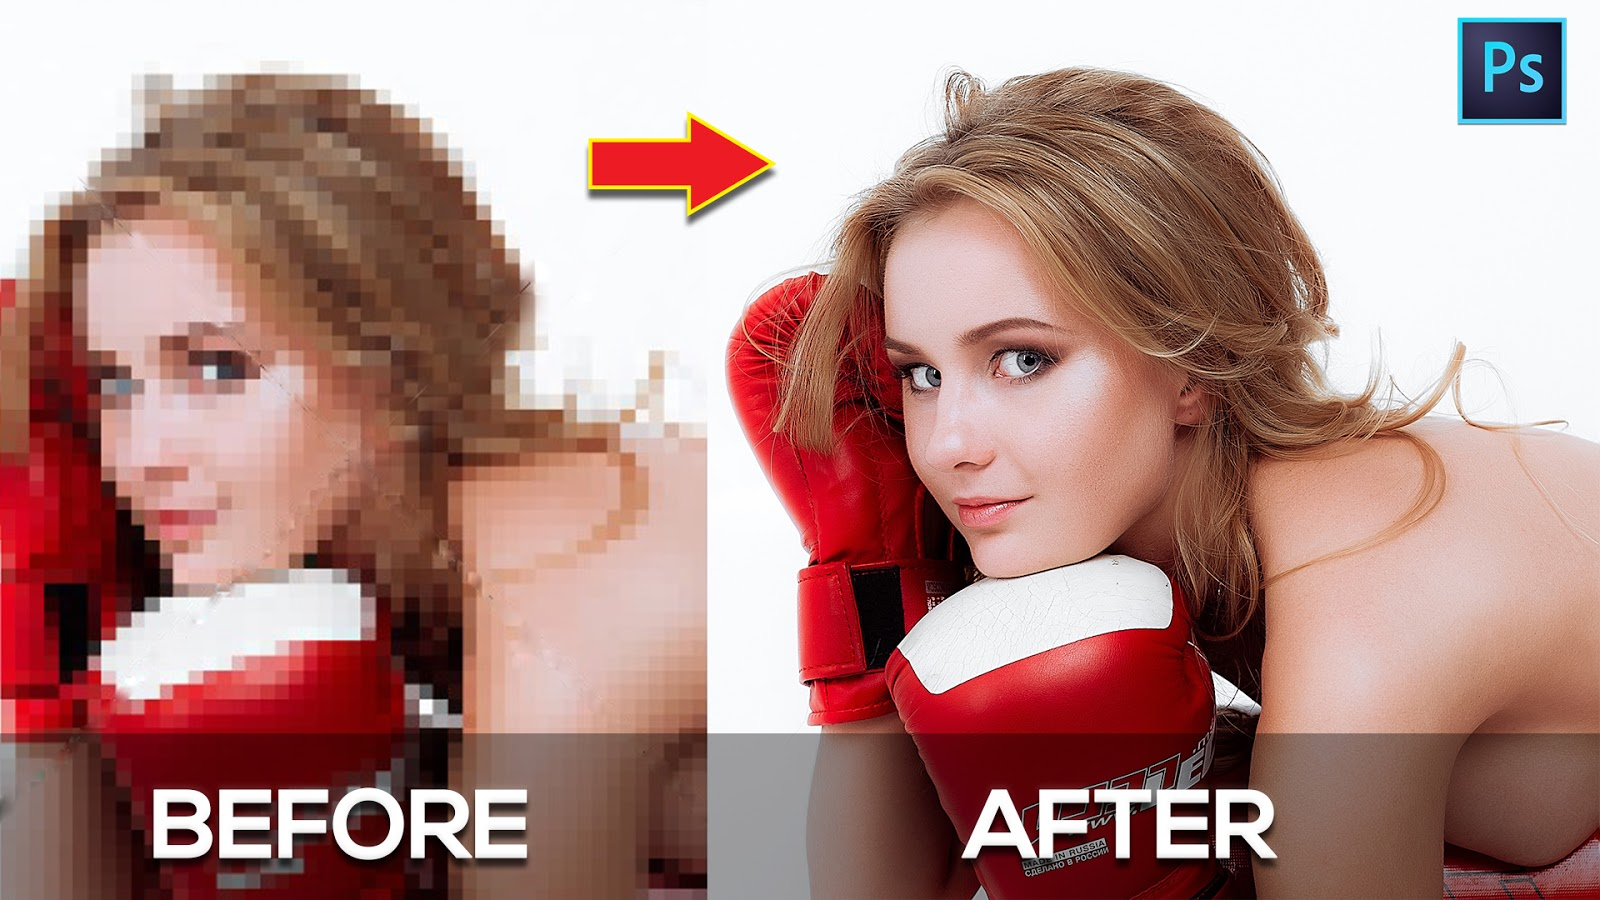 How to Depixelate images And Convert Into High Quality Photo